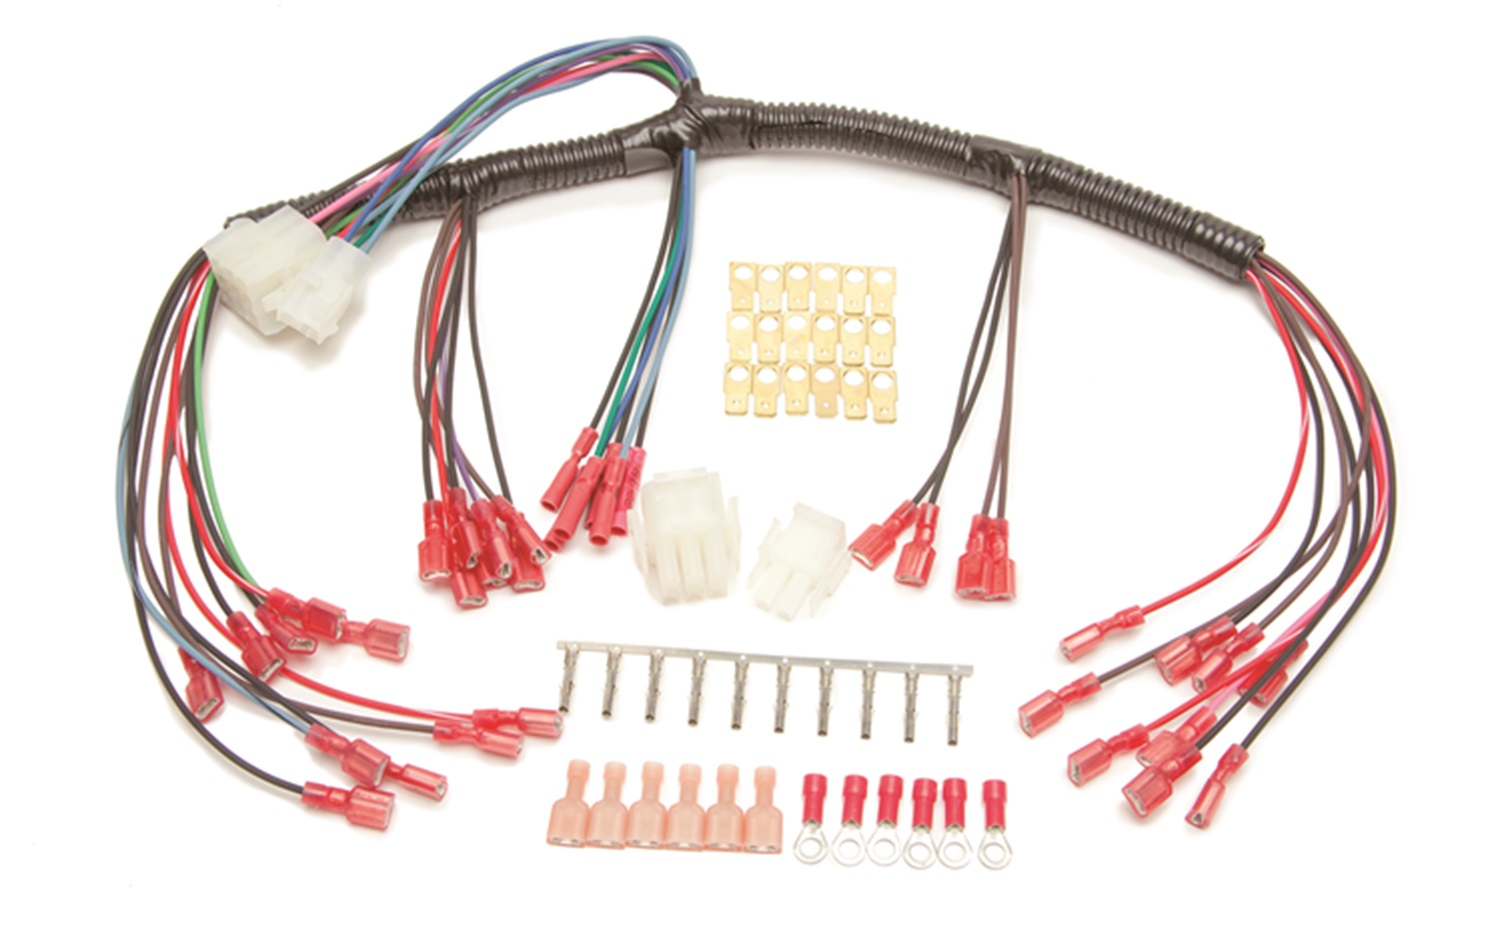 painless wiring harness for boats